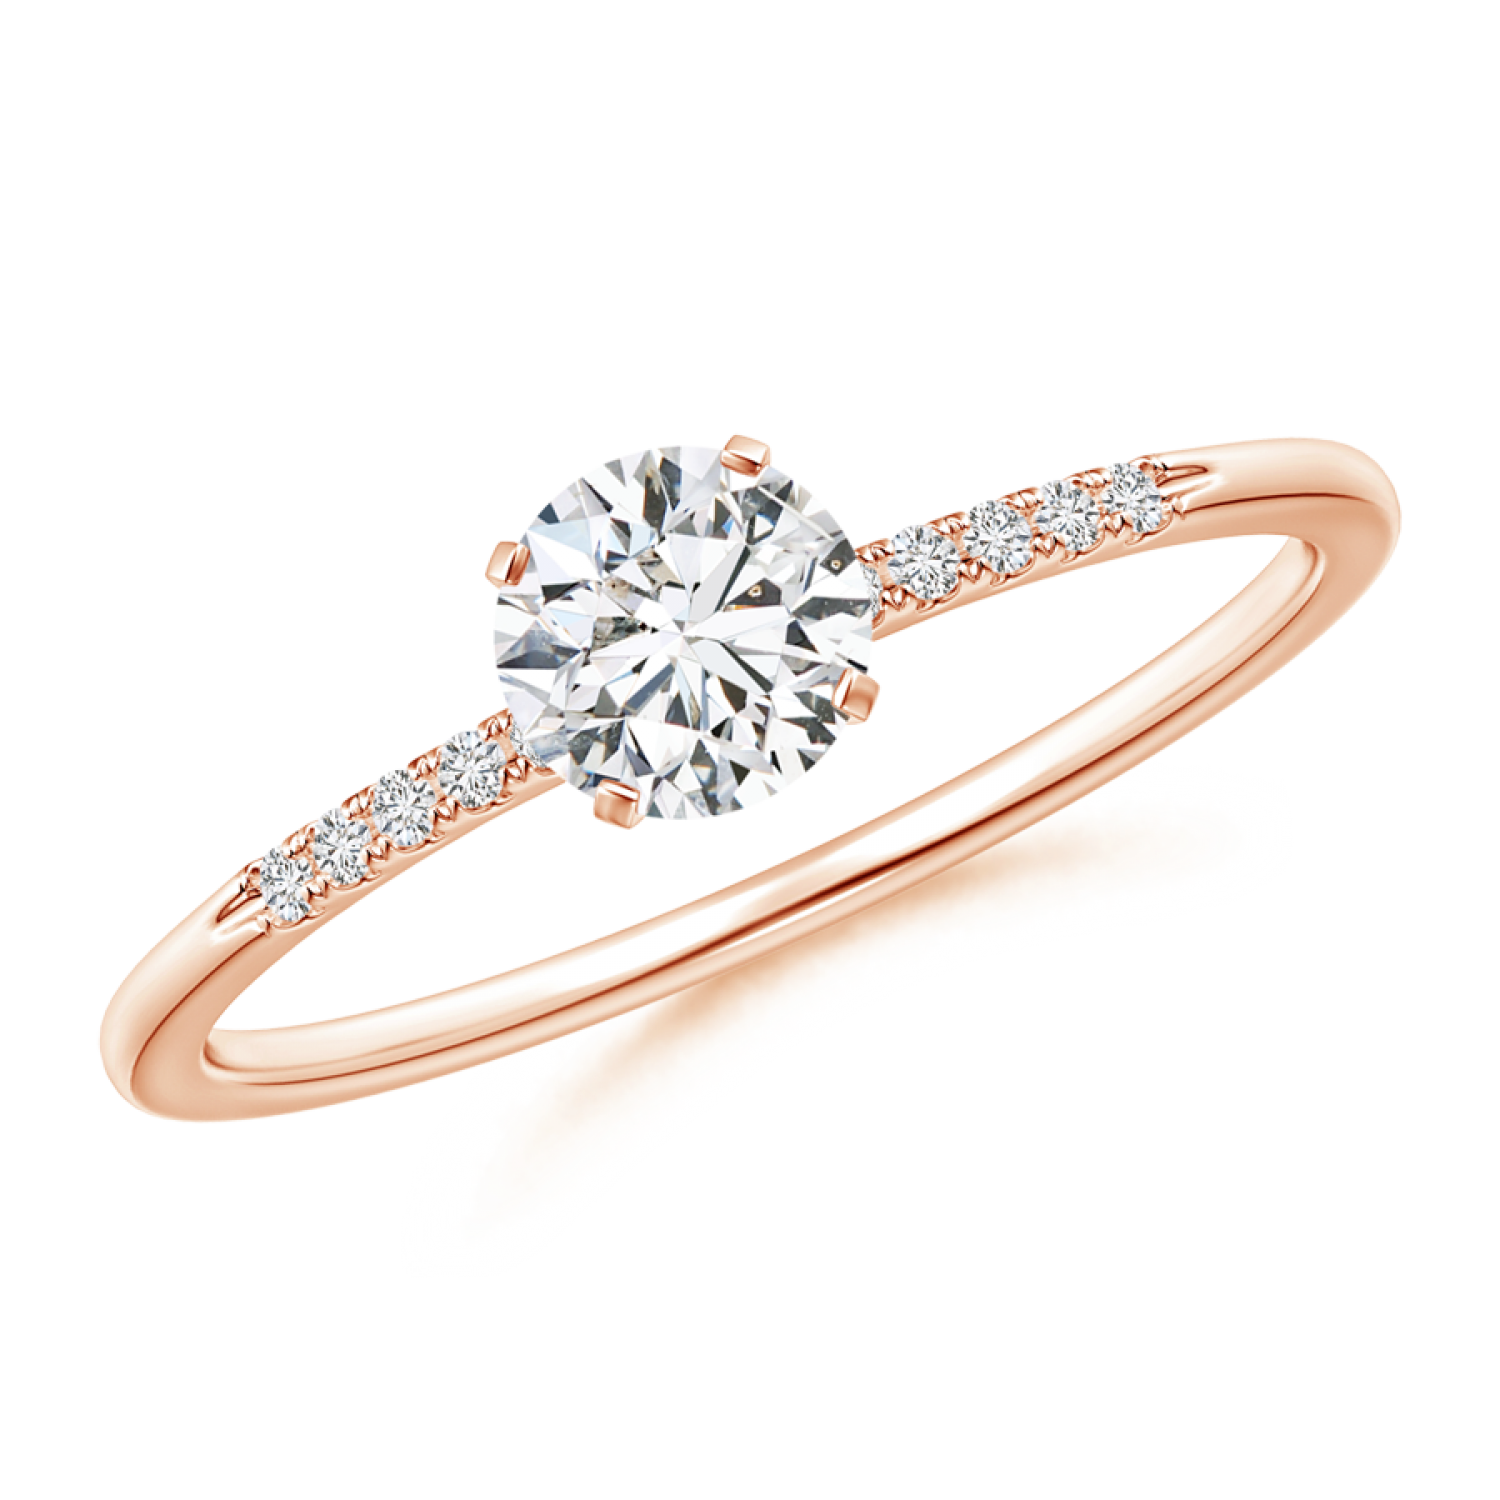 Classic Solitaire Round Lab Grown Diamond Ring with Accents - Side Image 3